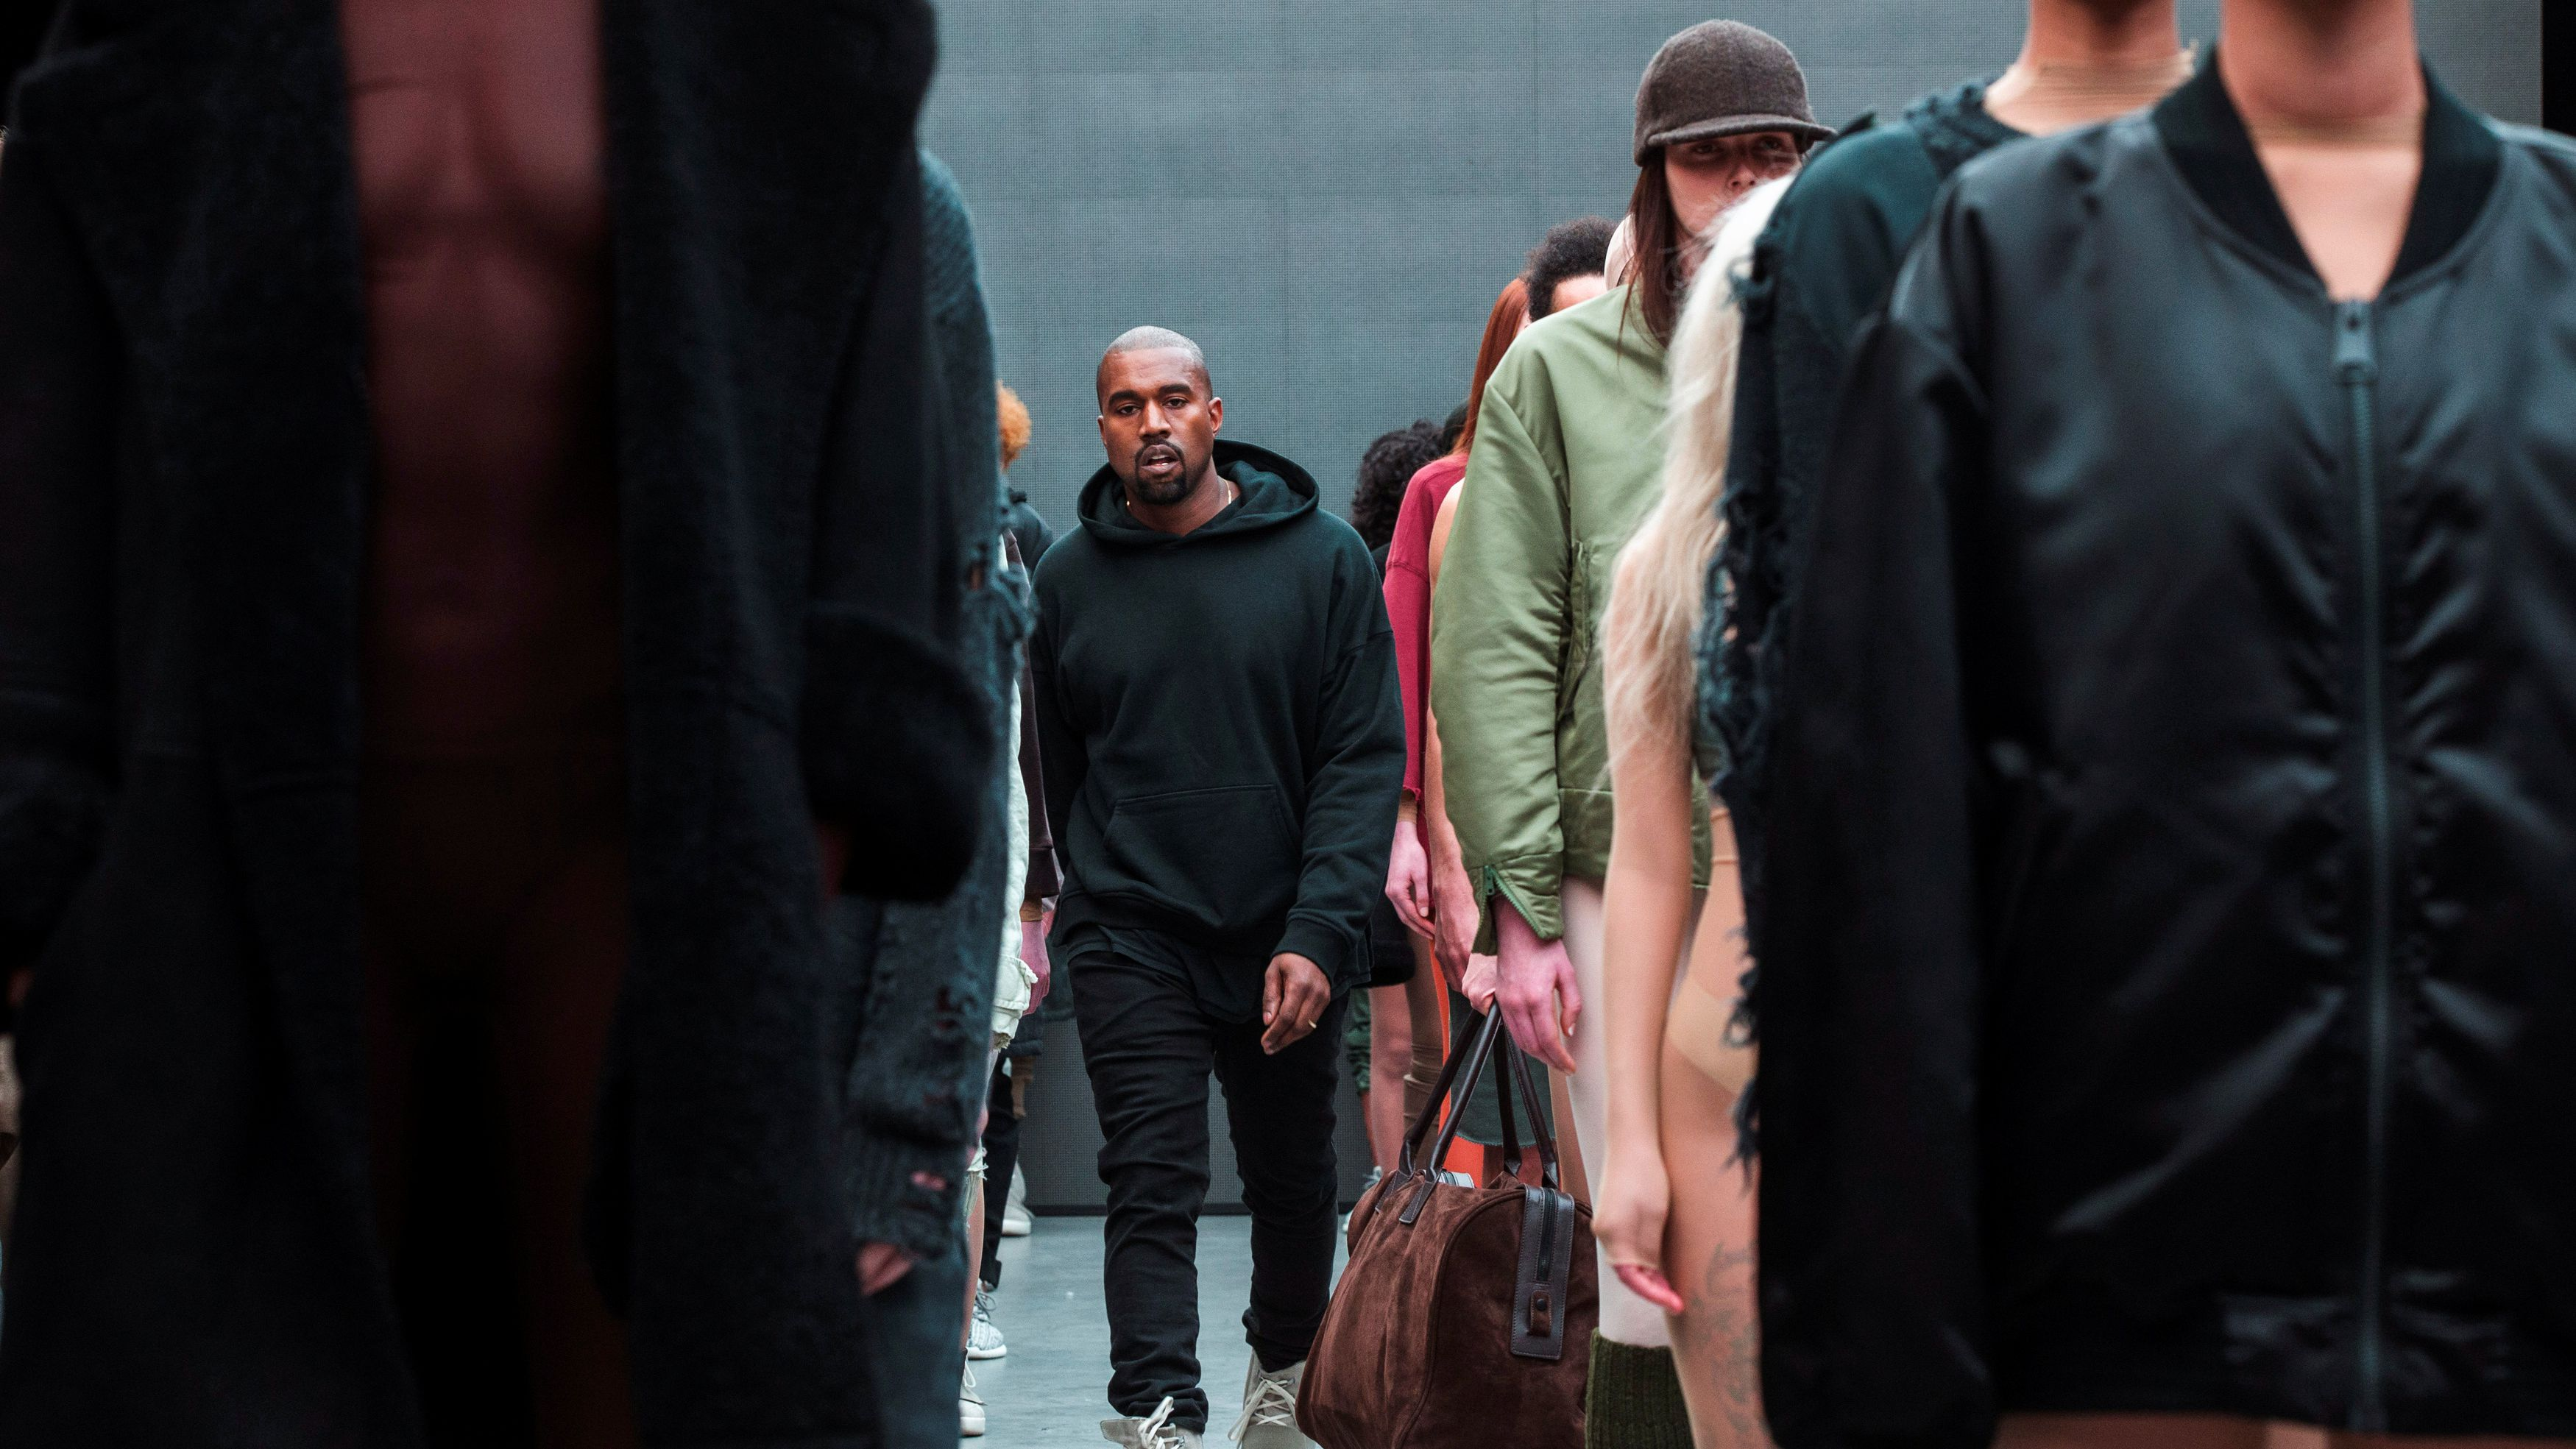 Singer Kanye West walks past models after presenting his Fall/Winter 2015 partnership line with Adidas at New York Fashion Week, U.S. February 12, 2015. Picture taken February 12, 2015.